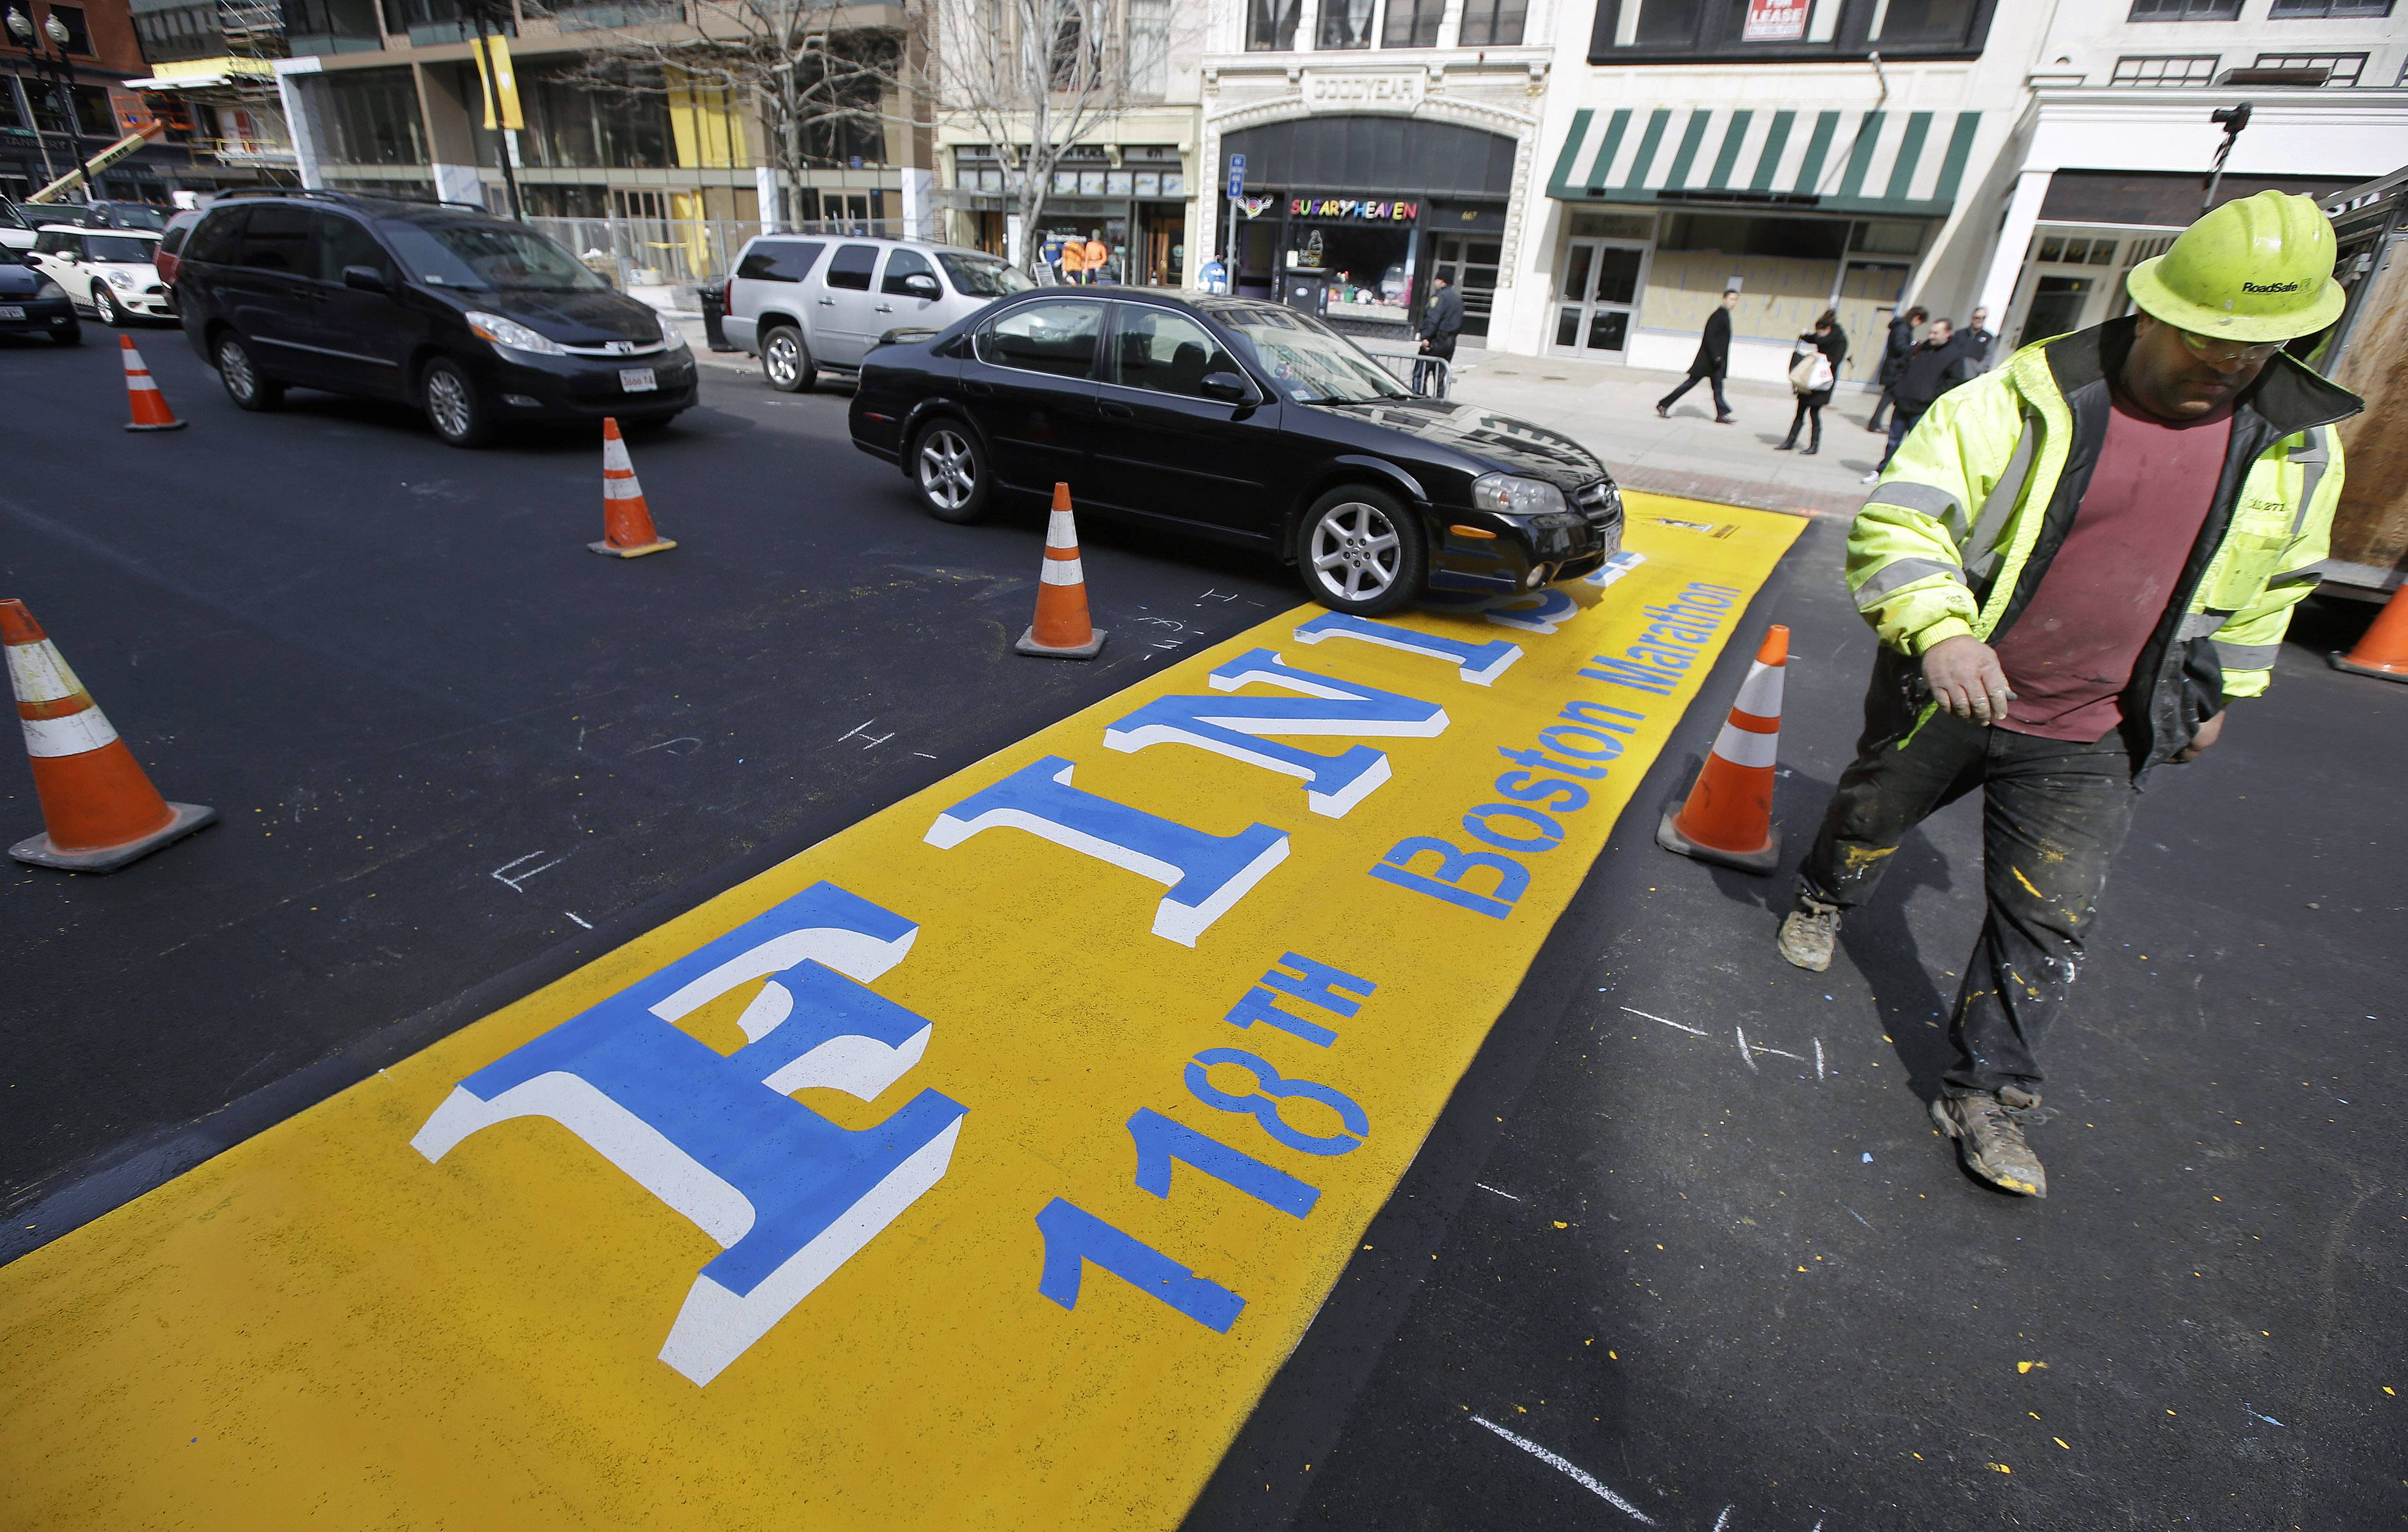 Eric House walks next to the Boston Marathon finish line while working on applying a fresh coat of paint on Boylston Street in Boston Tuesday. The 118th running of the Boston Marathon is scheduled for April 21.